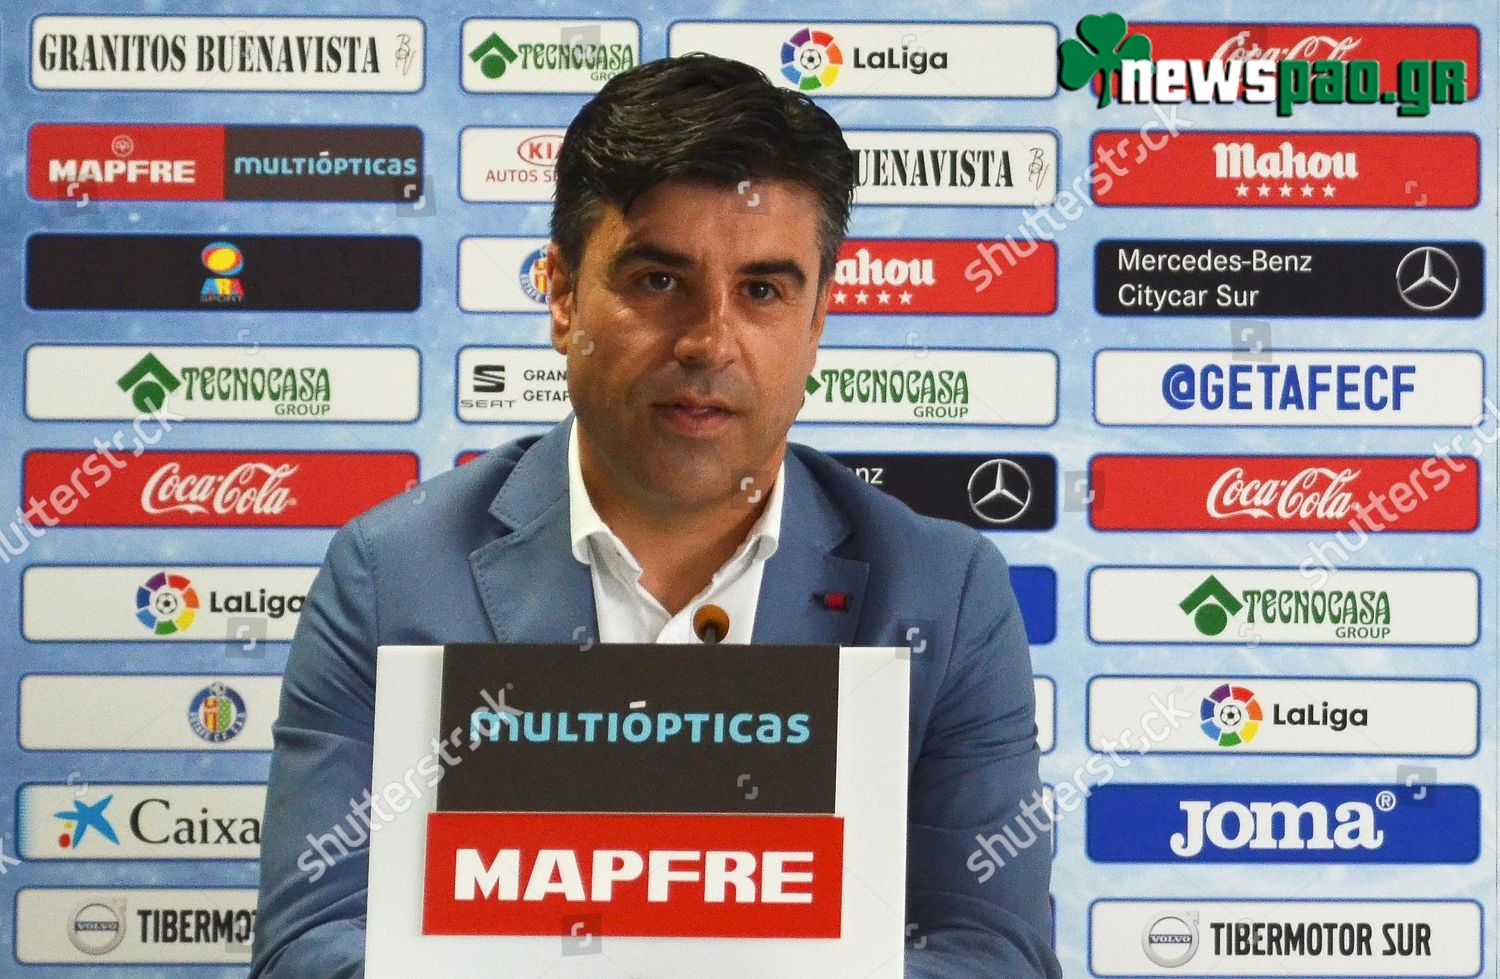 Mandatory Credit: Photo by David Ramiro/EPA-EFE/Shutterstock (9723582a) Nico Rodriguez Getafe's new sports director Nico Rodriguez, Spain - 21 Jun 2018 Nico Rodriguez, new sports director of Spanish Primera Division soccer club Getafe CF, speaks during a press conference for his presentation at Coliseum Alfonso Perez stadium in Getafe, near Madrid, Spain, 21 June 2018.